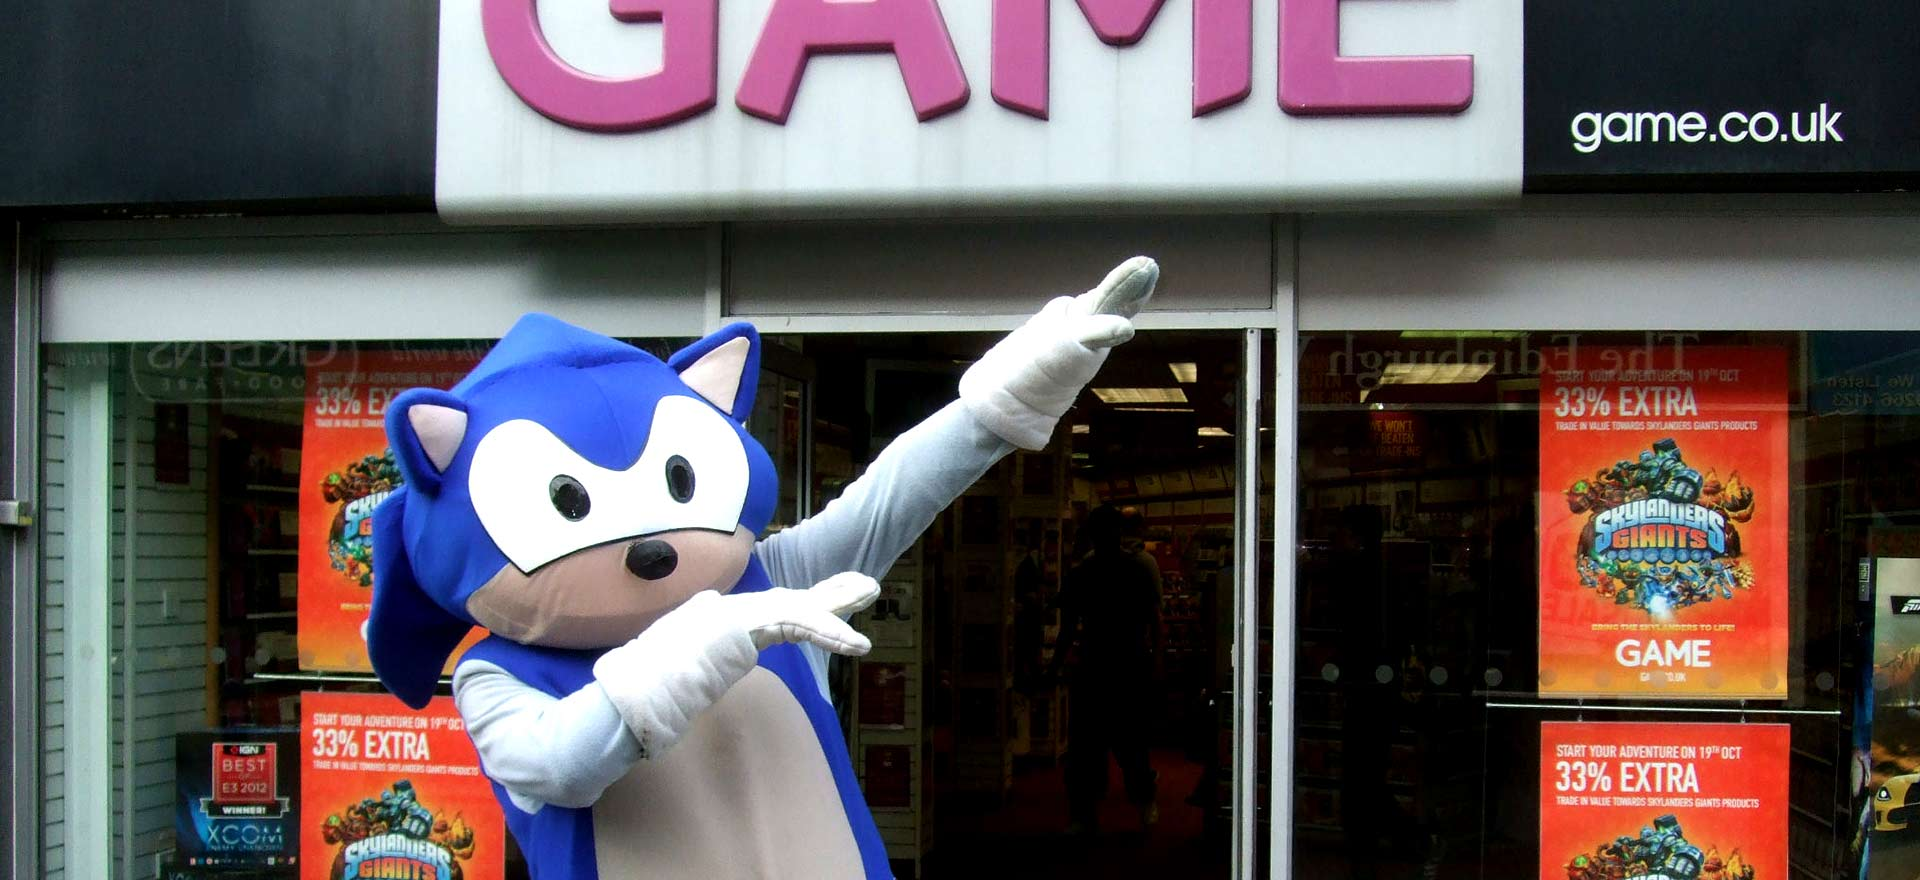 Sonic the Hedgehog mascot outside a Game store